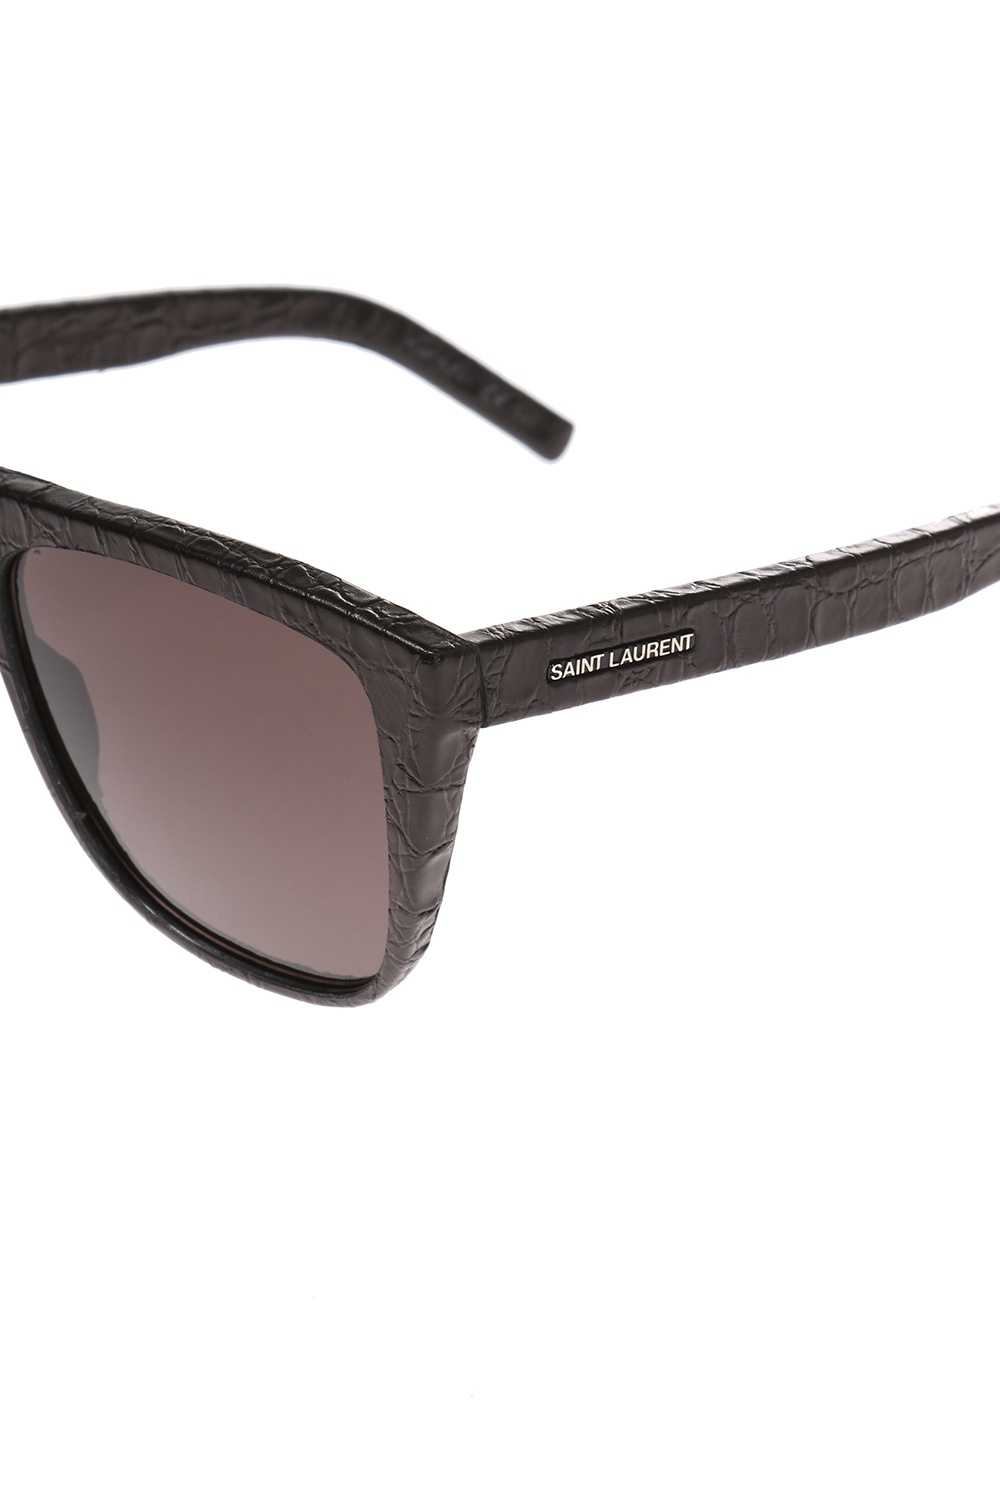 Saint Laurent 'SL 1' sunglasses